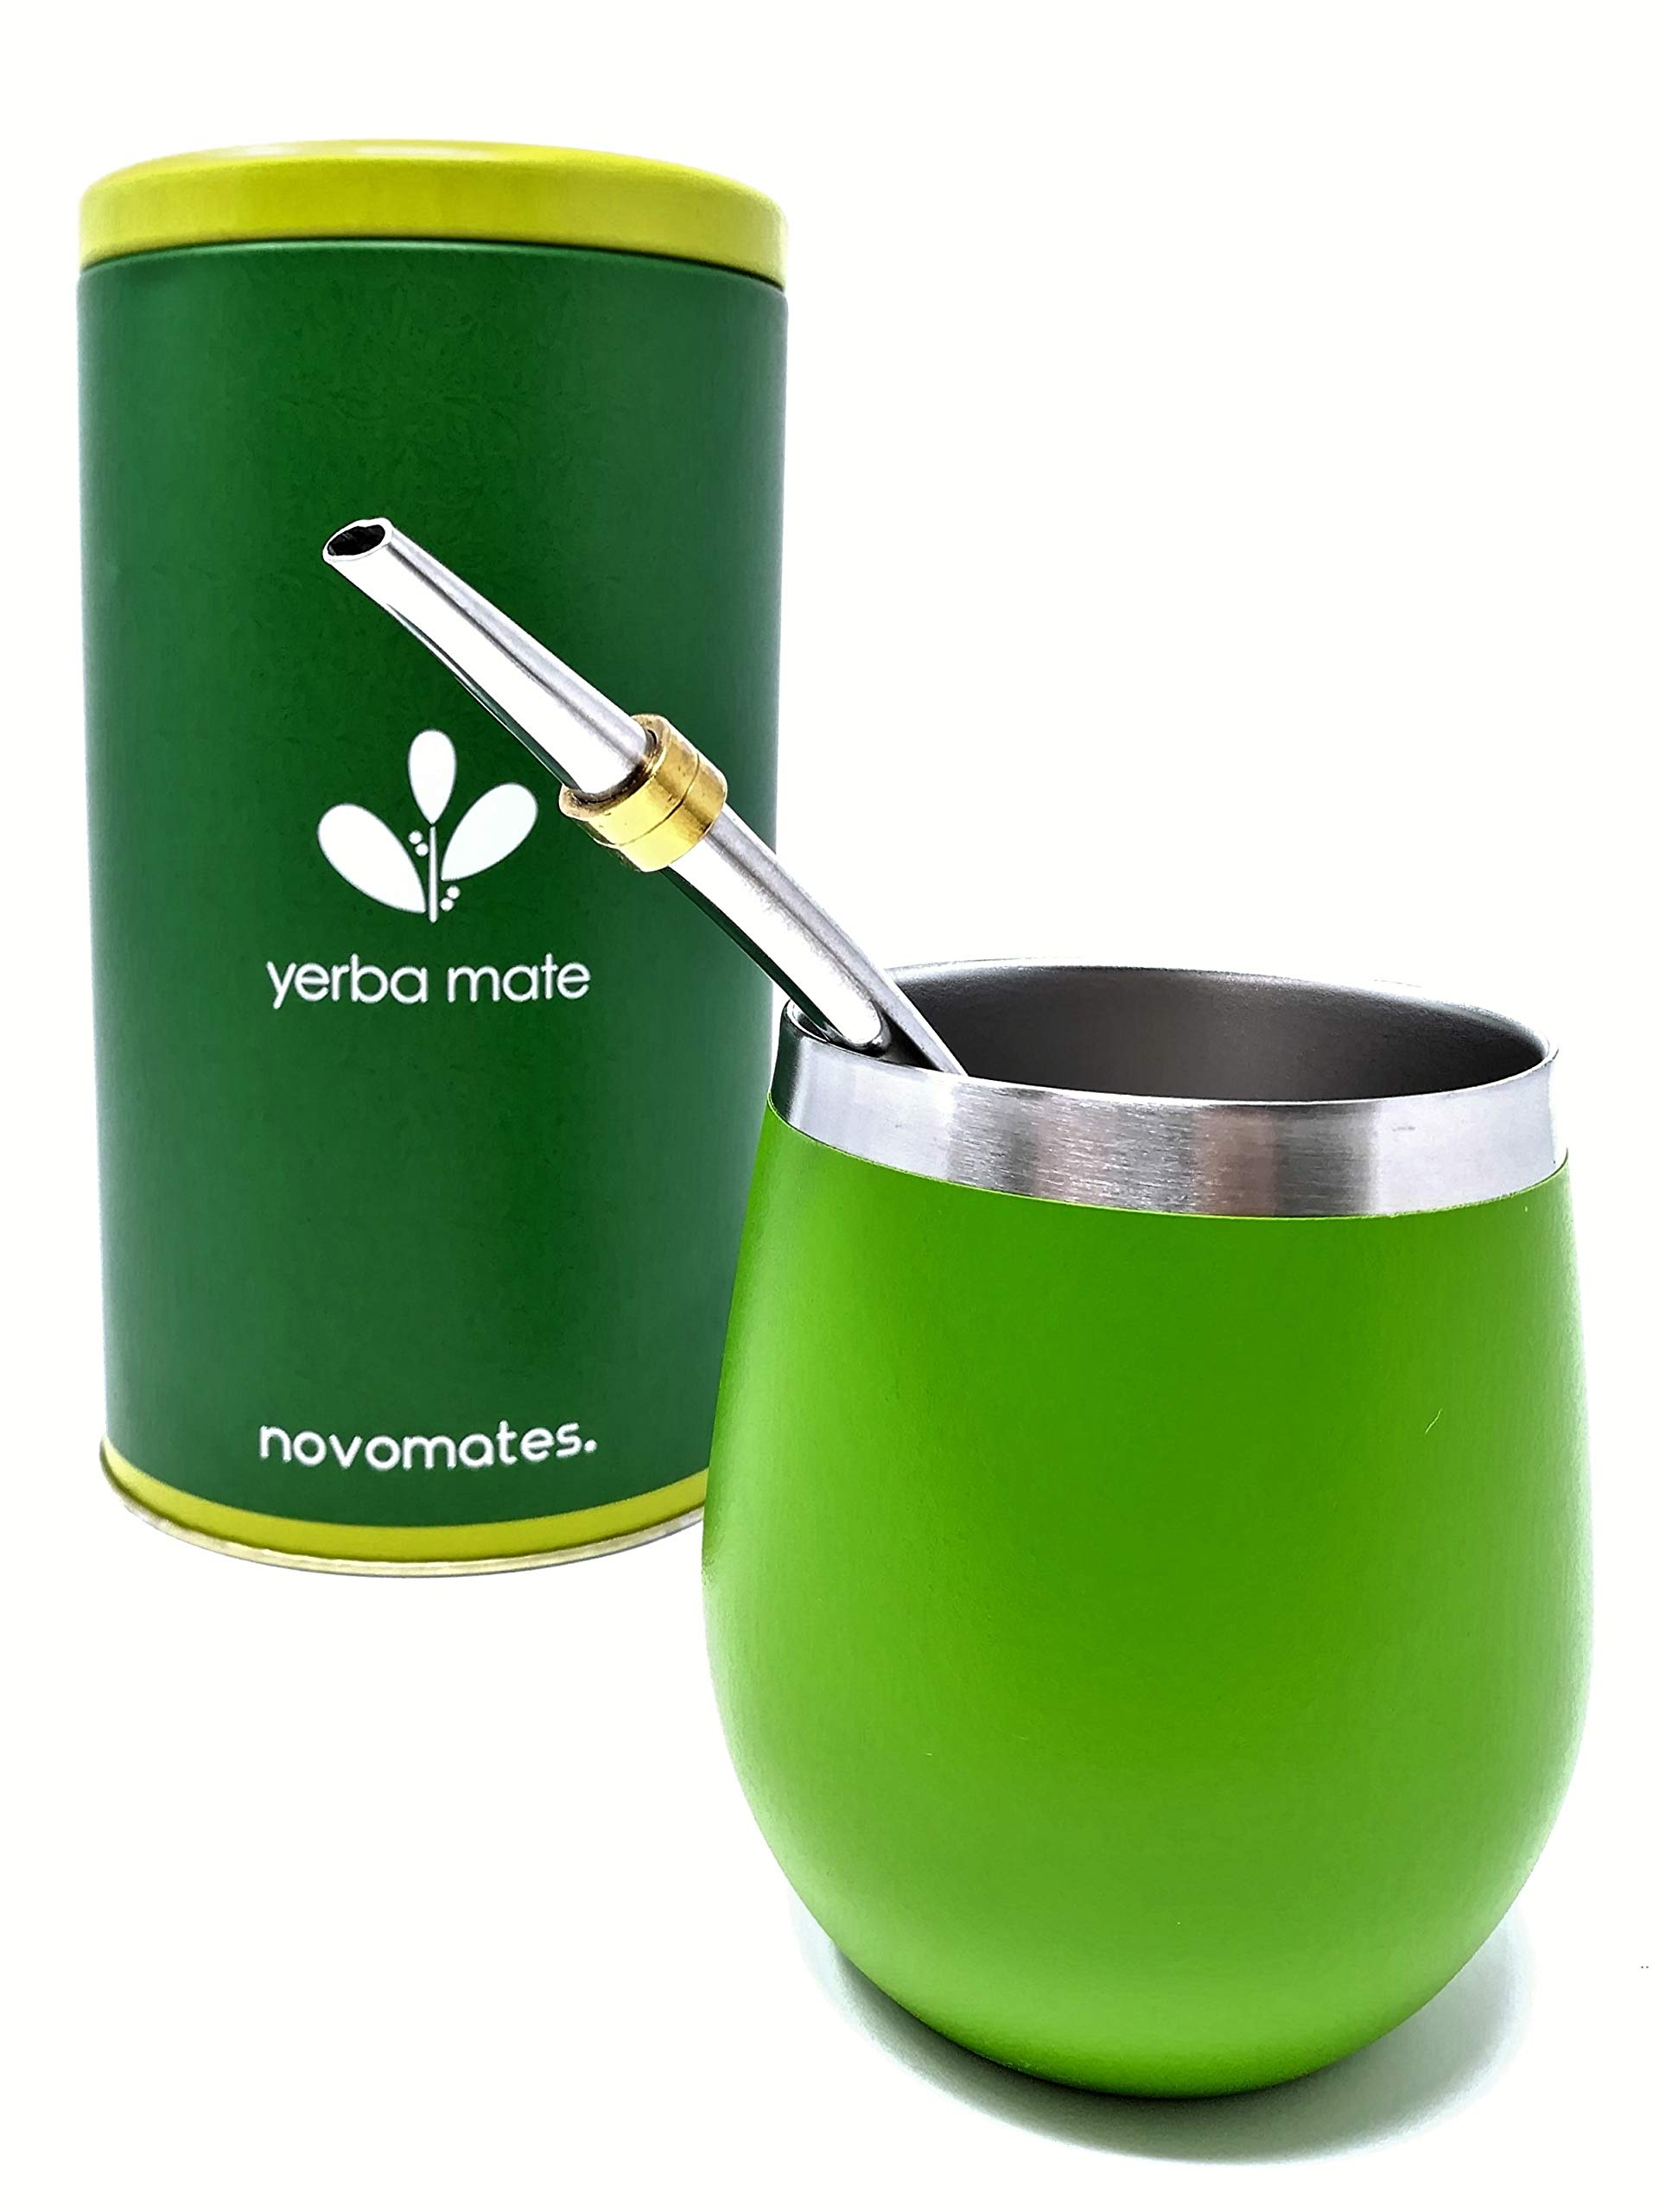 Novomates Yerba Mate Gourd - Best Yerba Mate Set - Includes Double Wall Stainless Steel Yerba Mate Cup With Stainless Steel Mate Bombilla Straw and Yerba Container – Gourd 8oz (237ml)